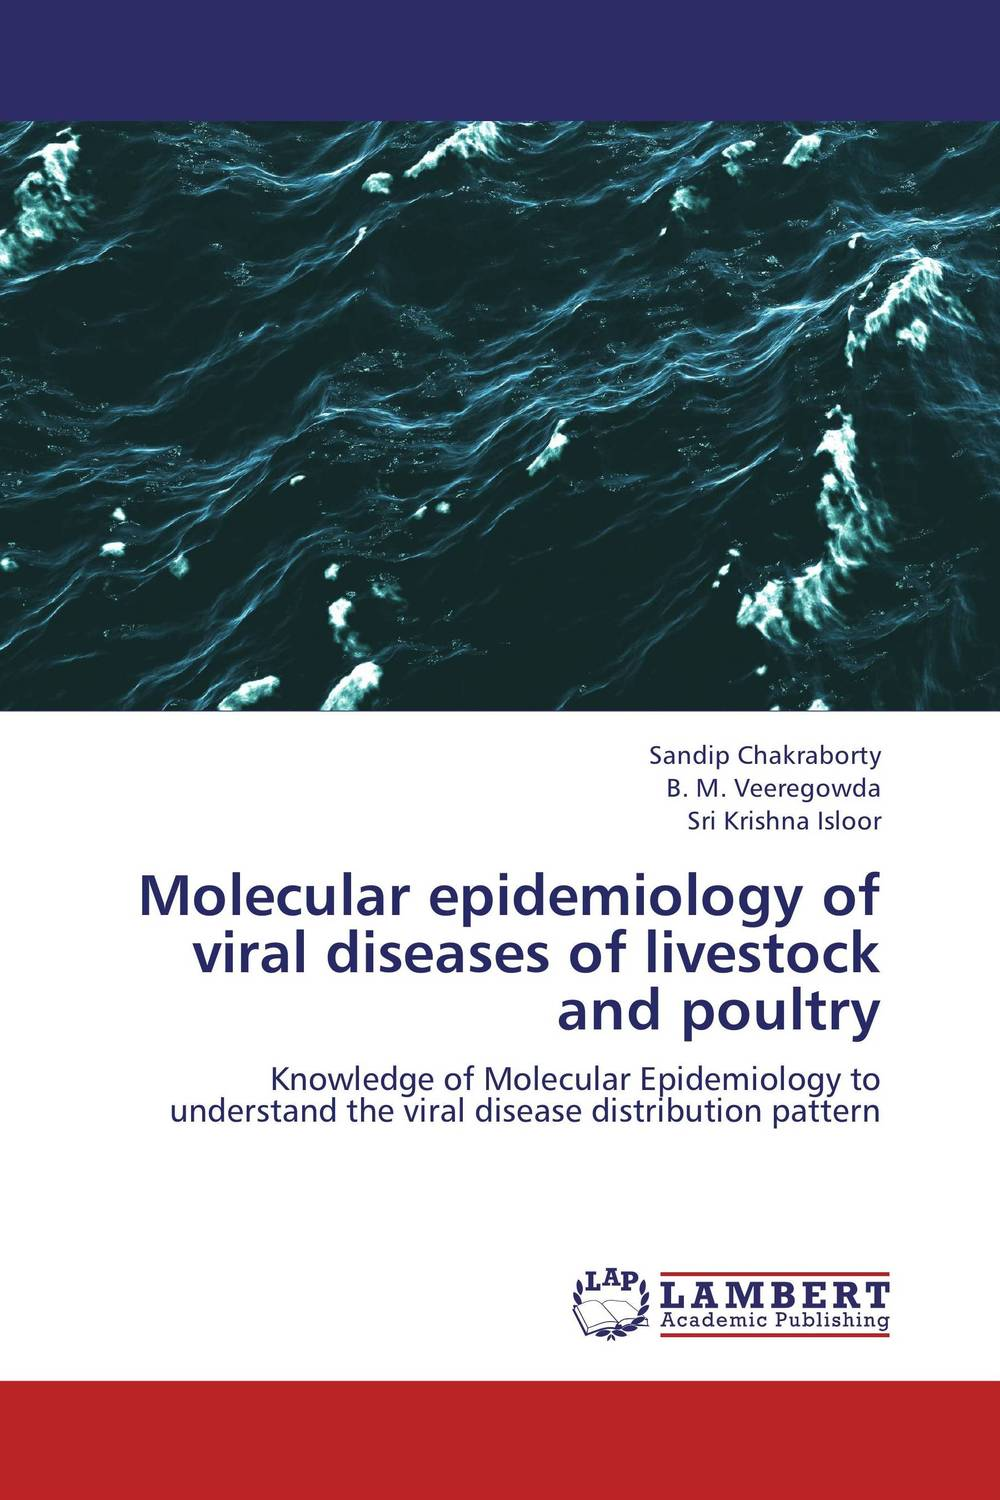 Molecular epidemiology of viral diseases of livestock and poultry postmortem epidemiological profile of burn cases